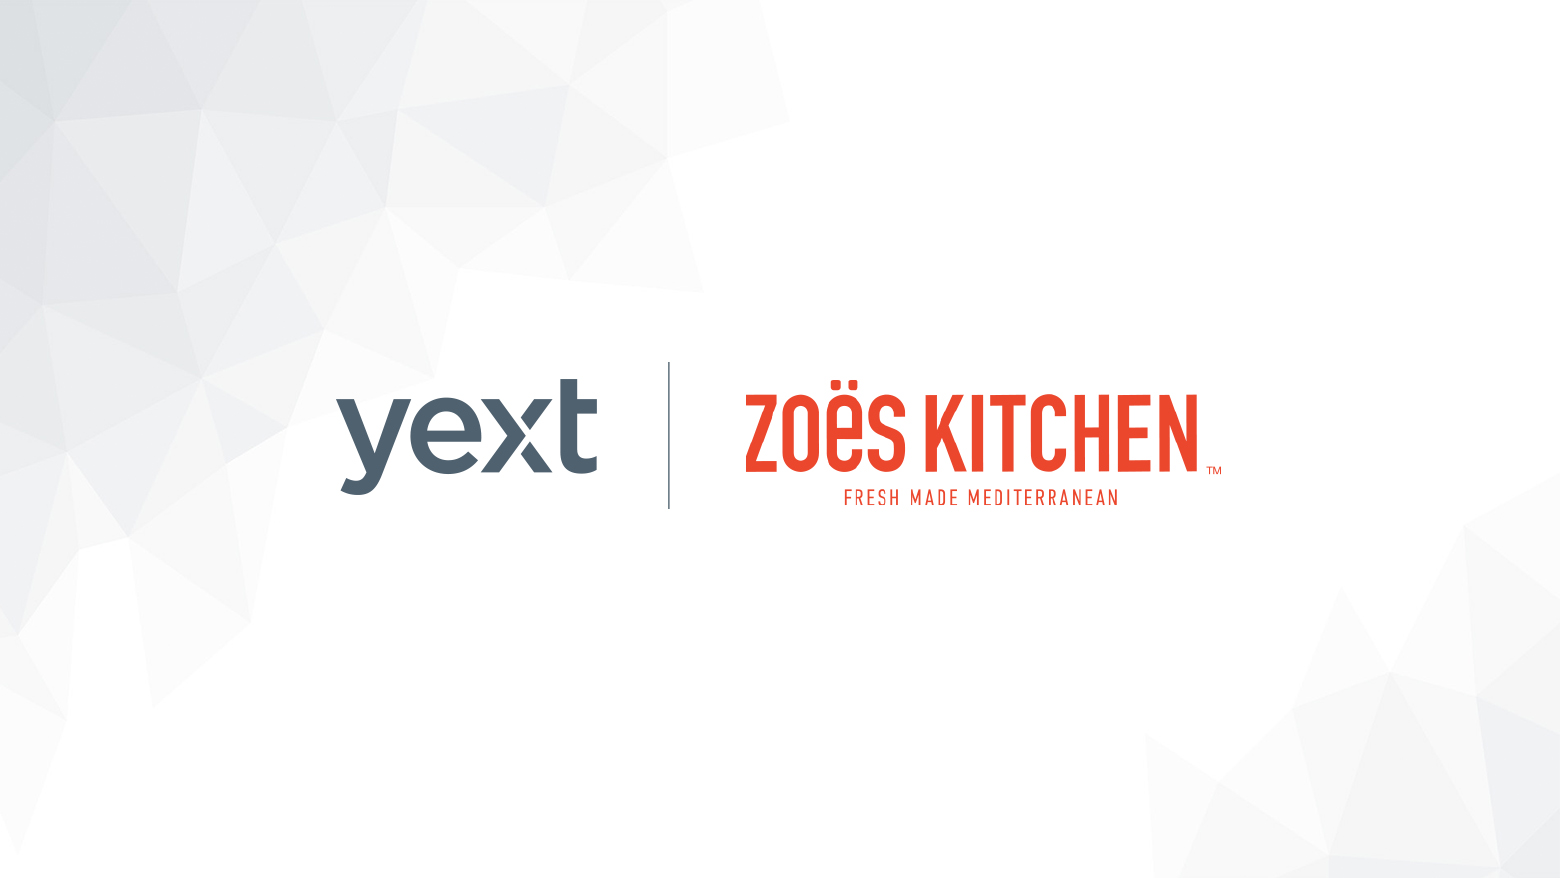 Yext And Zoes Kitchen Become Partners To Manage Digital